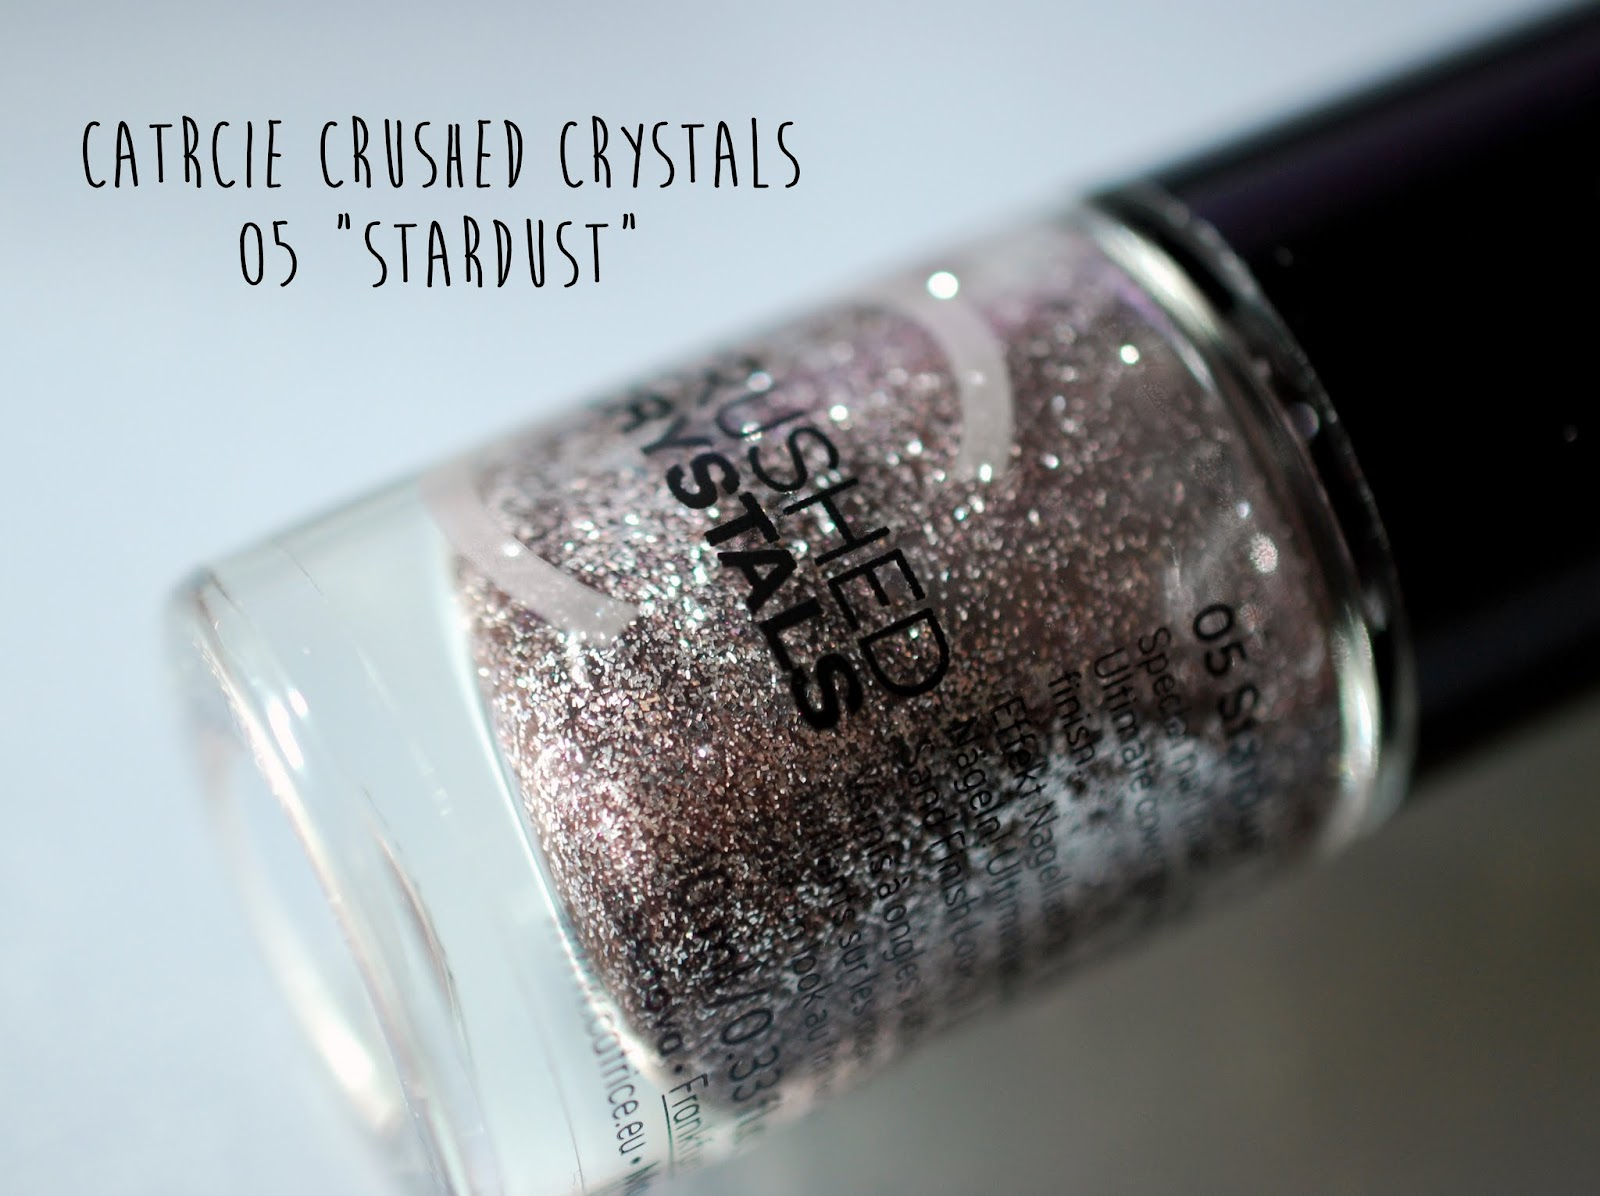 Catrice Crushed Crystals Nagellack Stardust